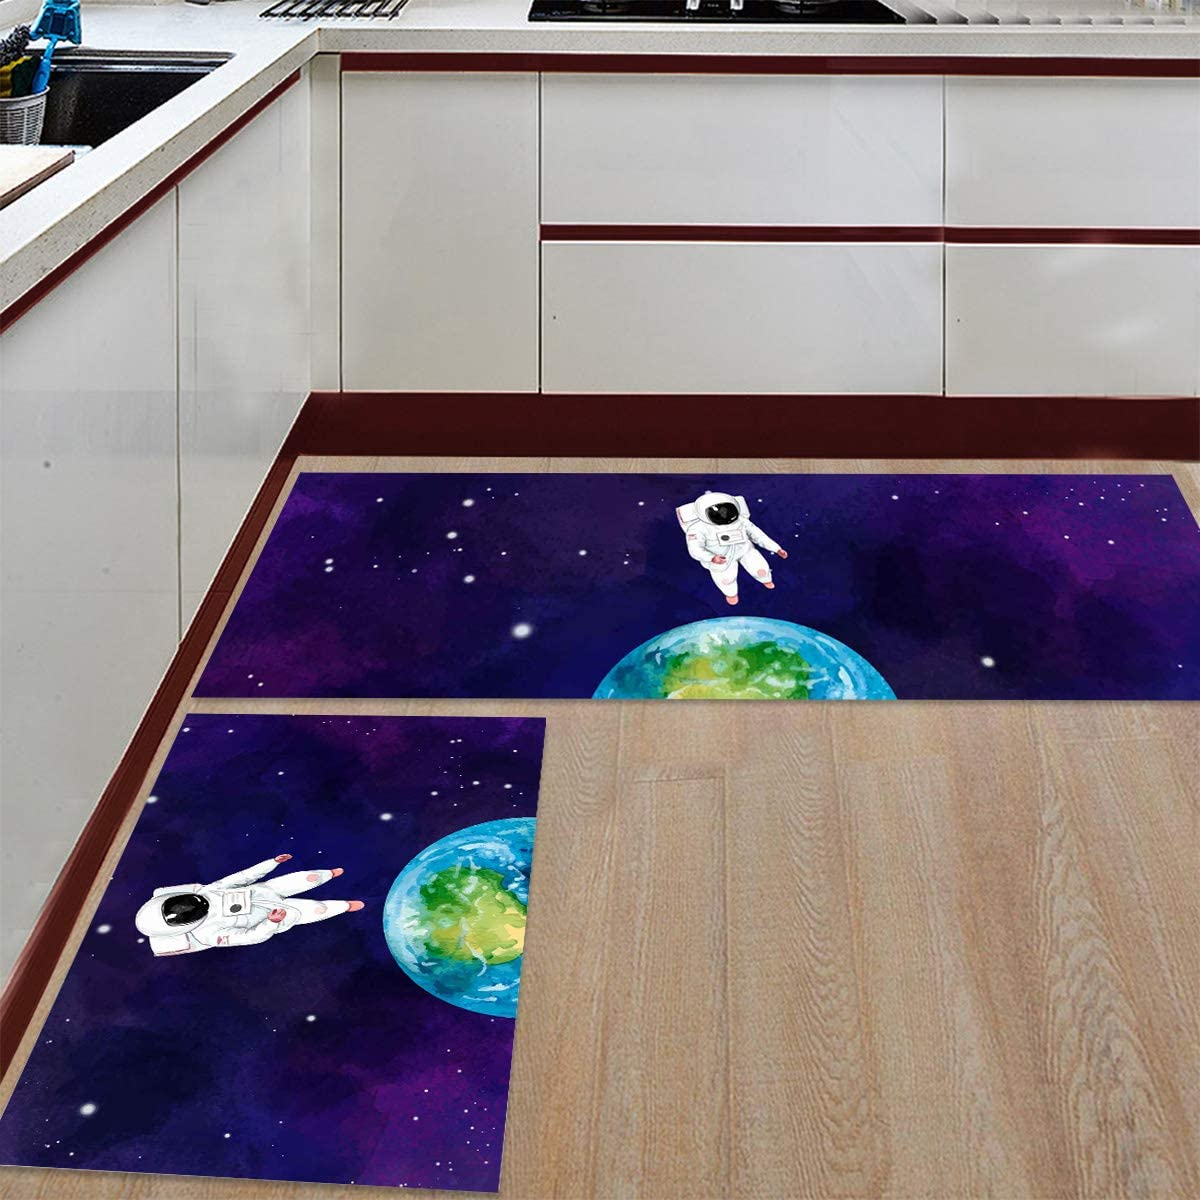 2 Pieces Anti-Slip Kitchen OFFicial mail order Mats Mesa Mall Astronaut Spa Flowing in Cartoon